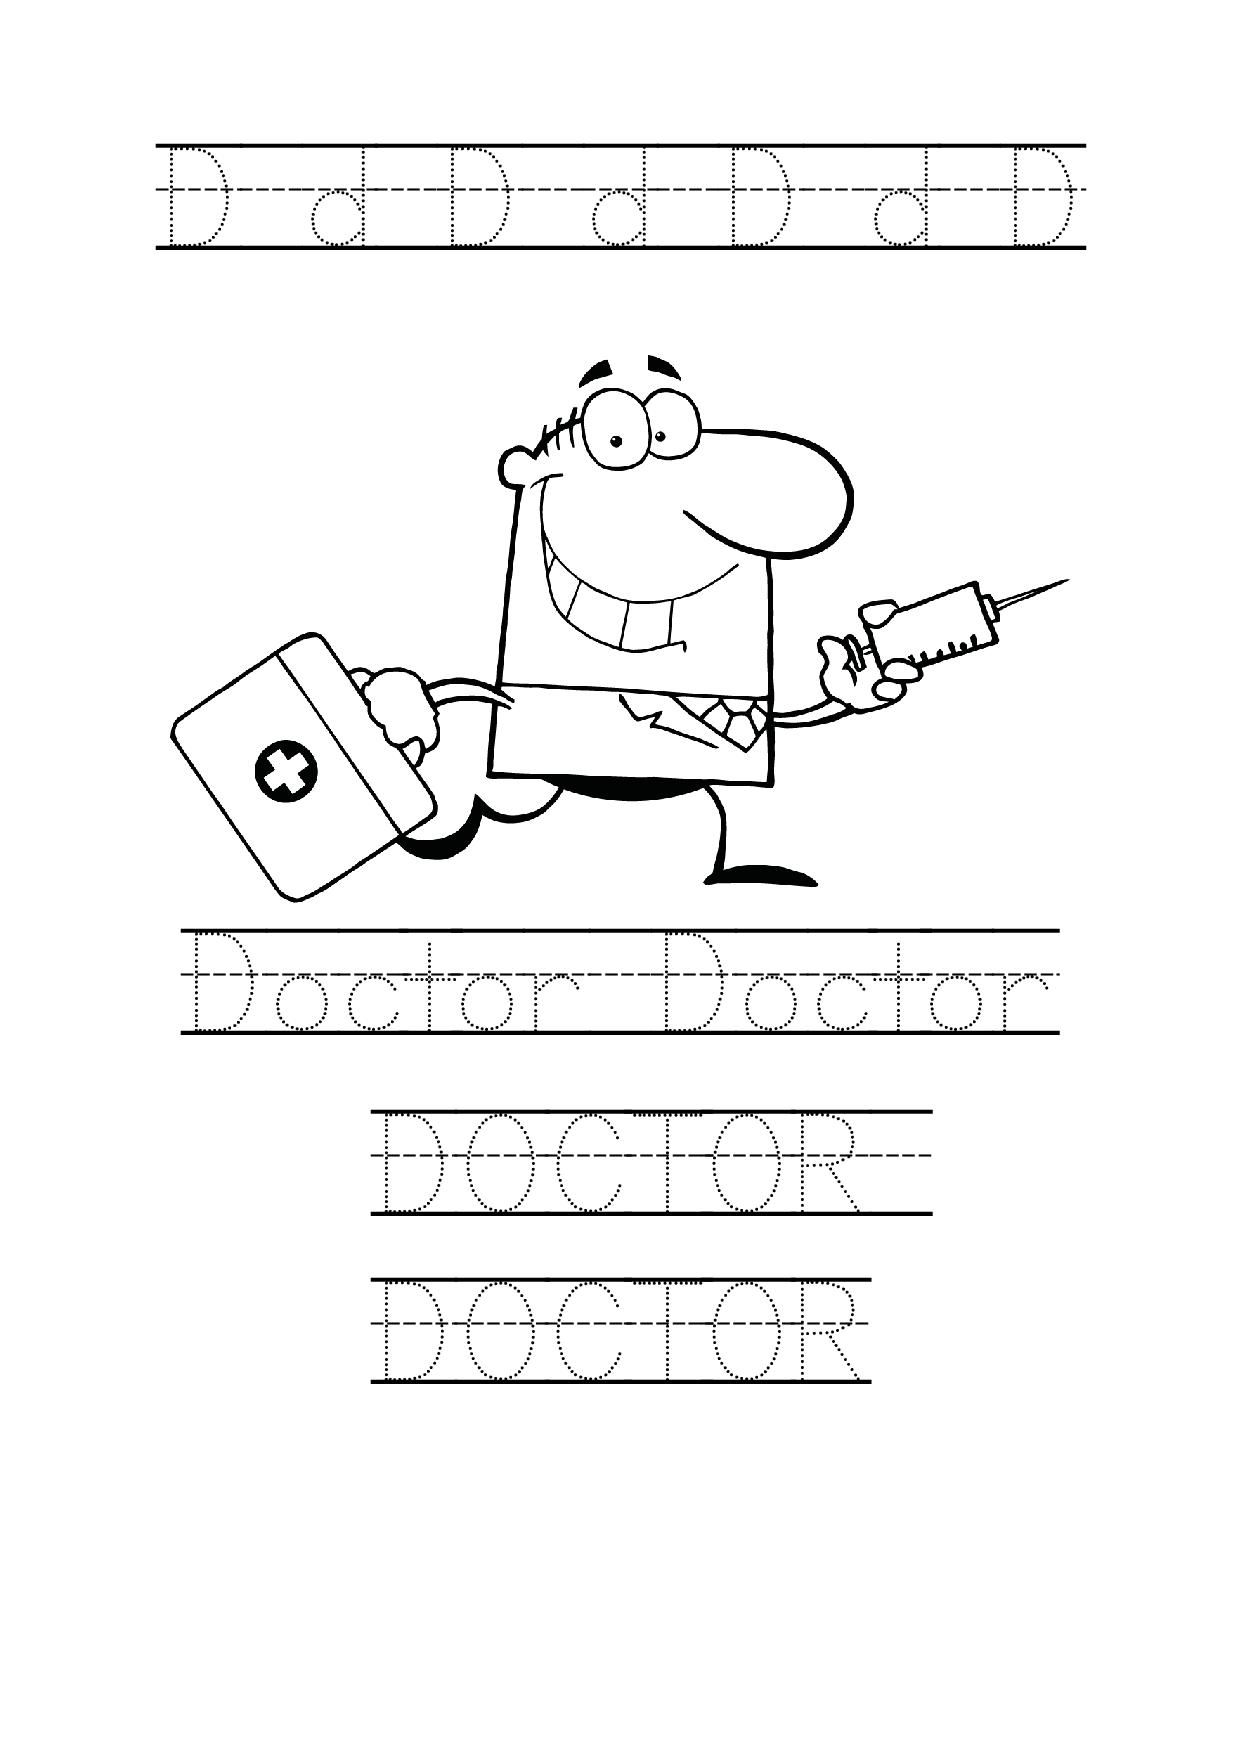 Tracing Word Doctor Worksheet Coloring Page For Preschool National Dr Day